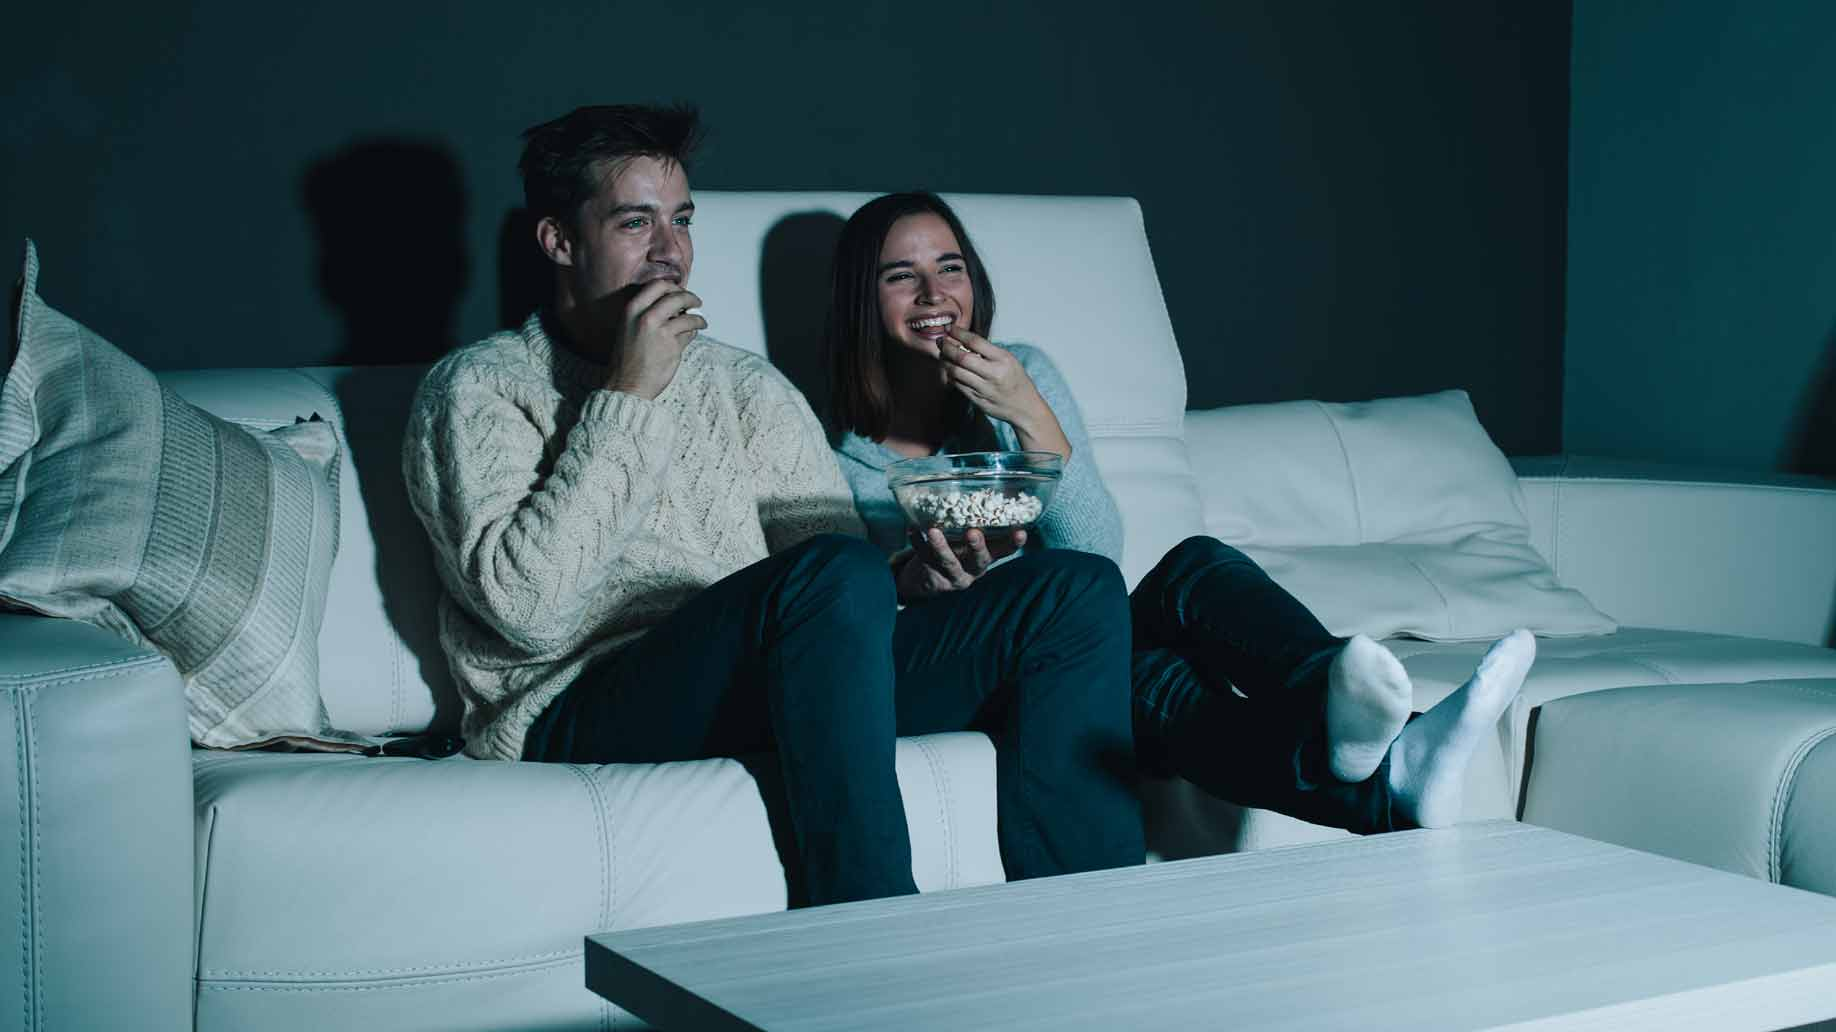 couple watching movie at home